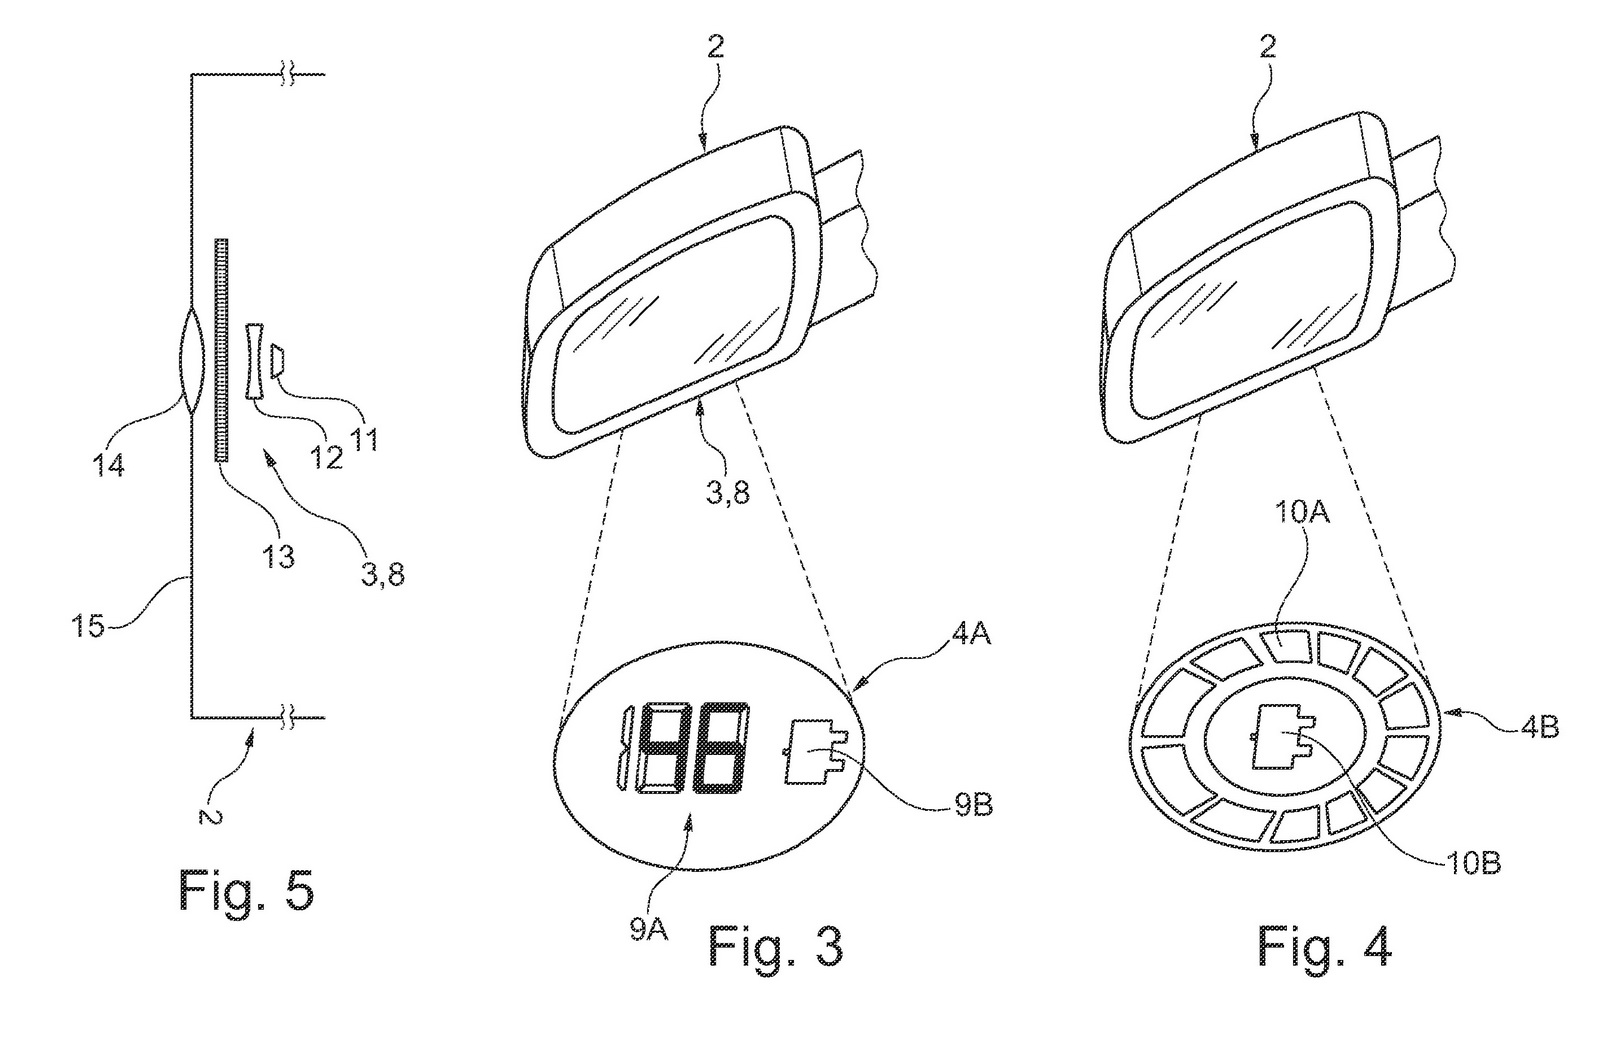 Ford Patents Puddle Lights With Status Display For EVs And